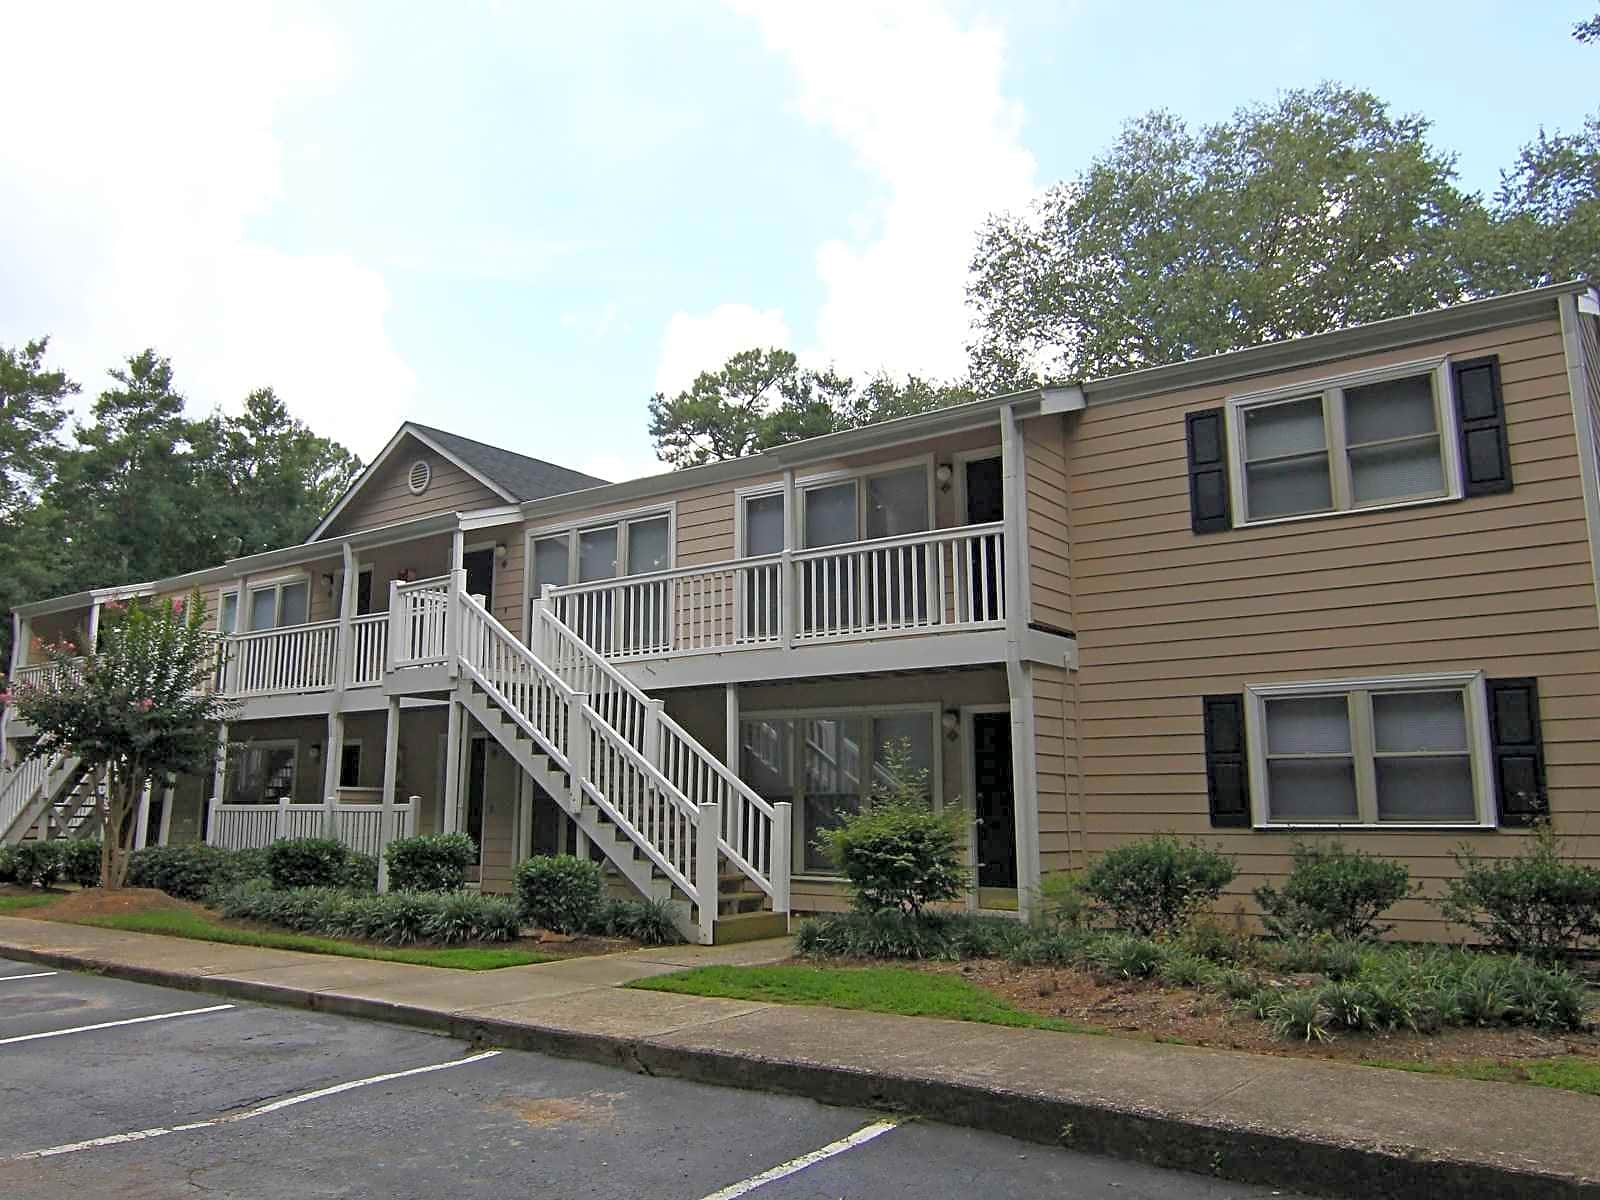 Photo: Raleigh Apartment for Rent - $630.00 / month; 1 Bd & 1 Ba